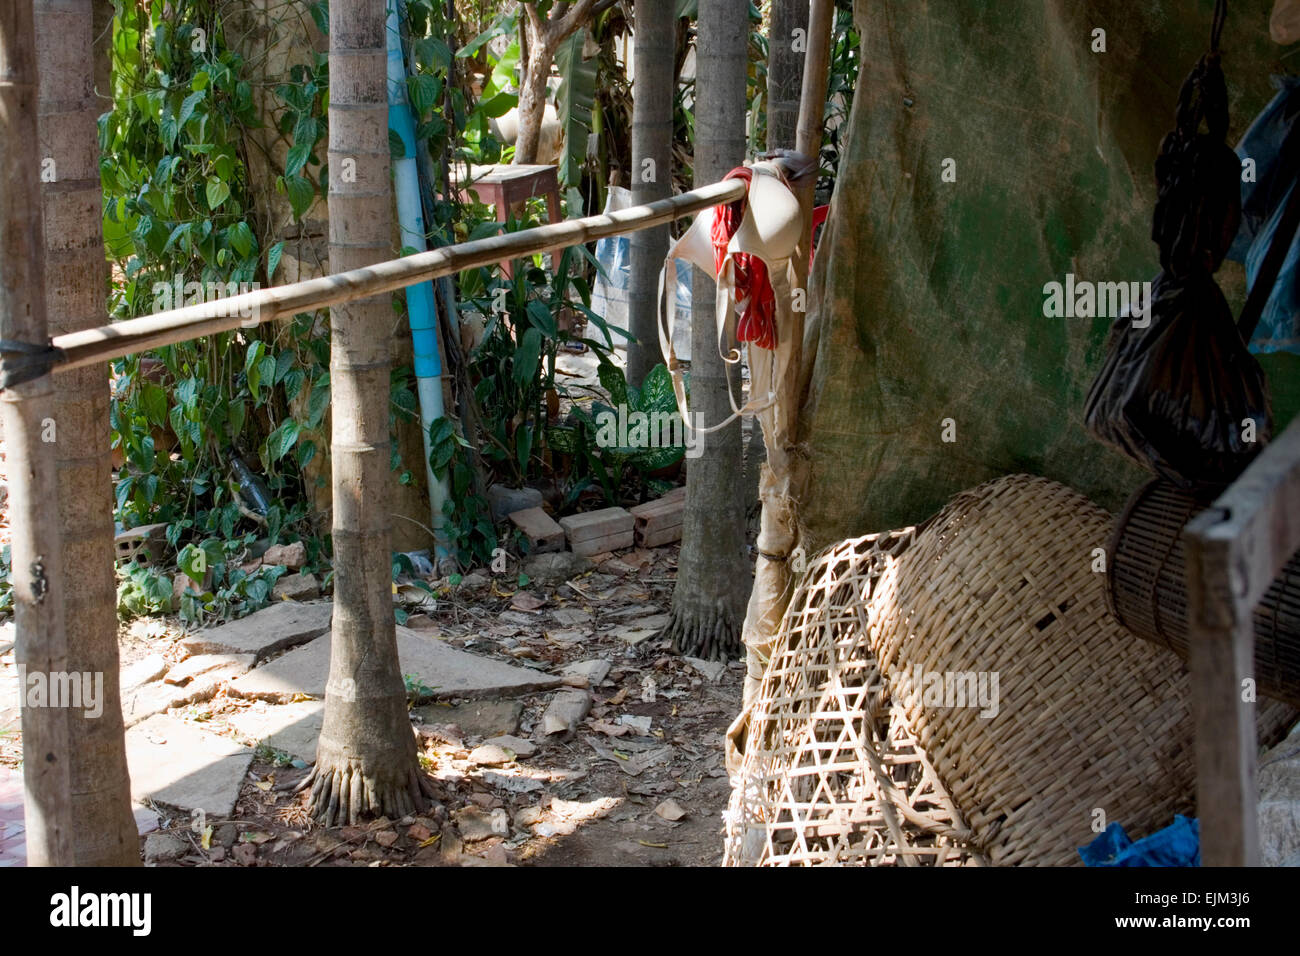 A woman's bra (brassiere) is hanging on a bamboo pole at the University of Agriculture in Kampong Cham, Cambodia. - Stock Image